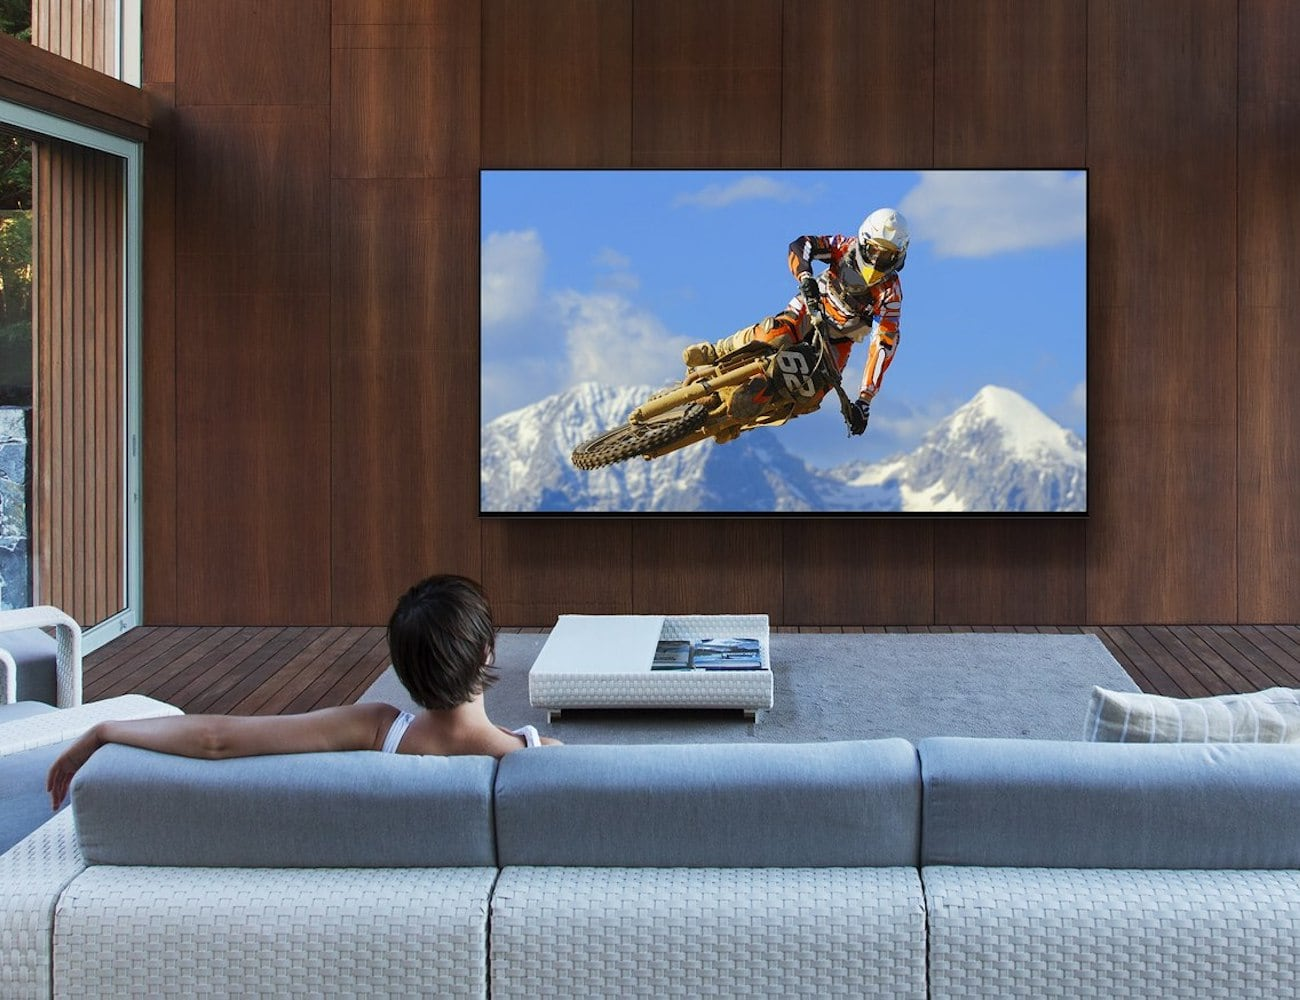 Sony Master Series ZG9/Z9G 8K HDR TV delivers a superior picture